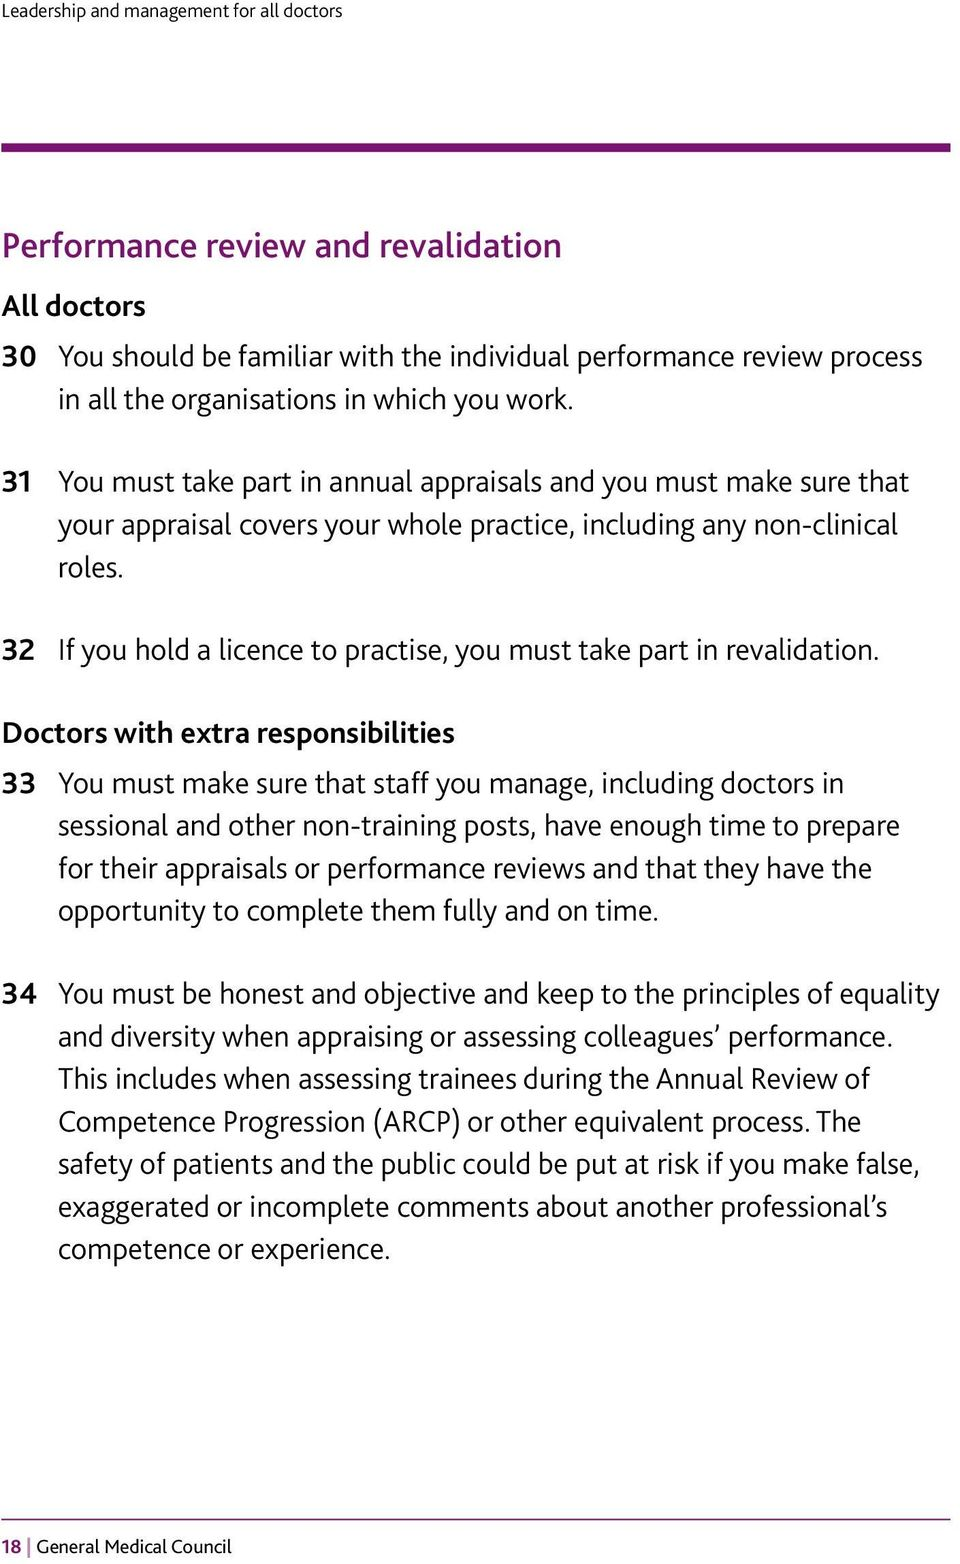 32 If you hold a licence to practise, you must take part in revalidation.